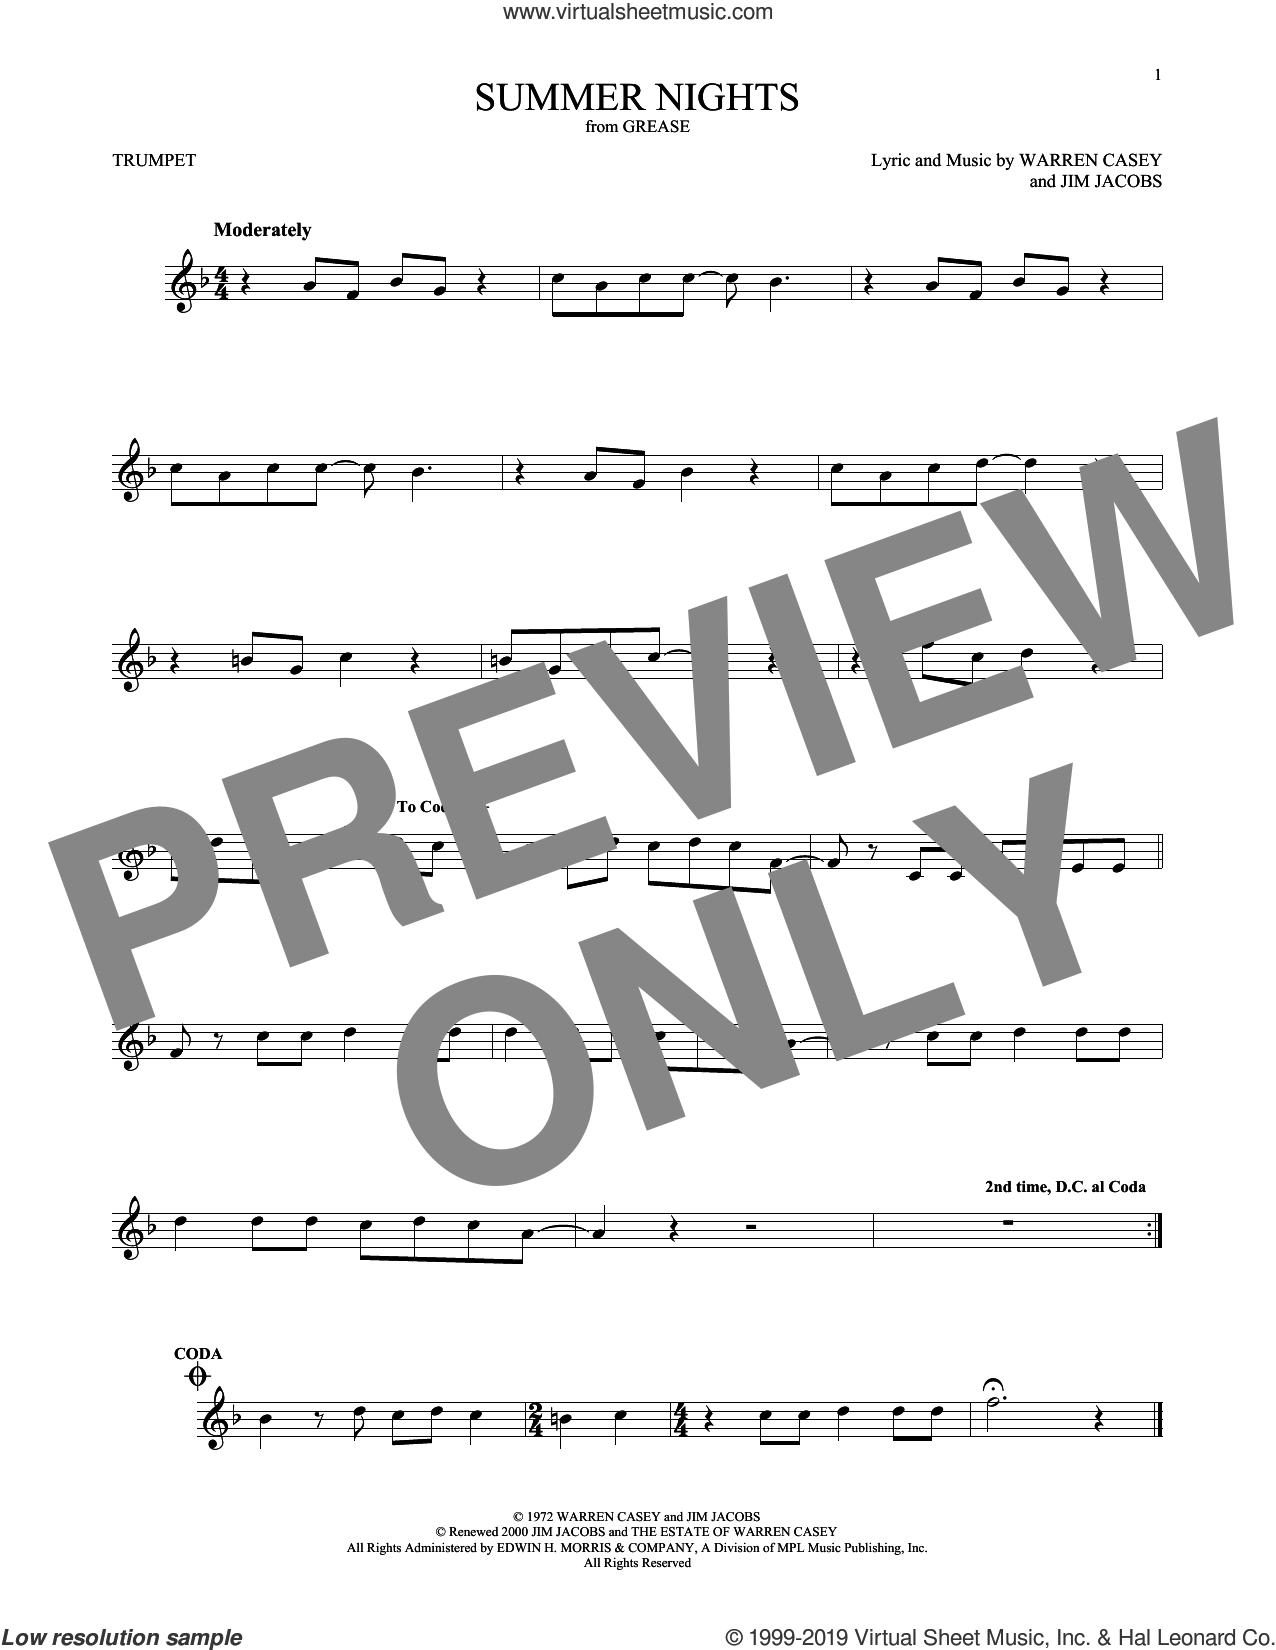 Summer Nights sheet music for trumpet solo by Jim Jacobs and Warren Casey, intermediate skill level